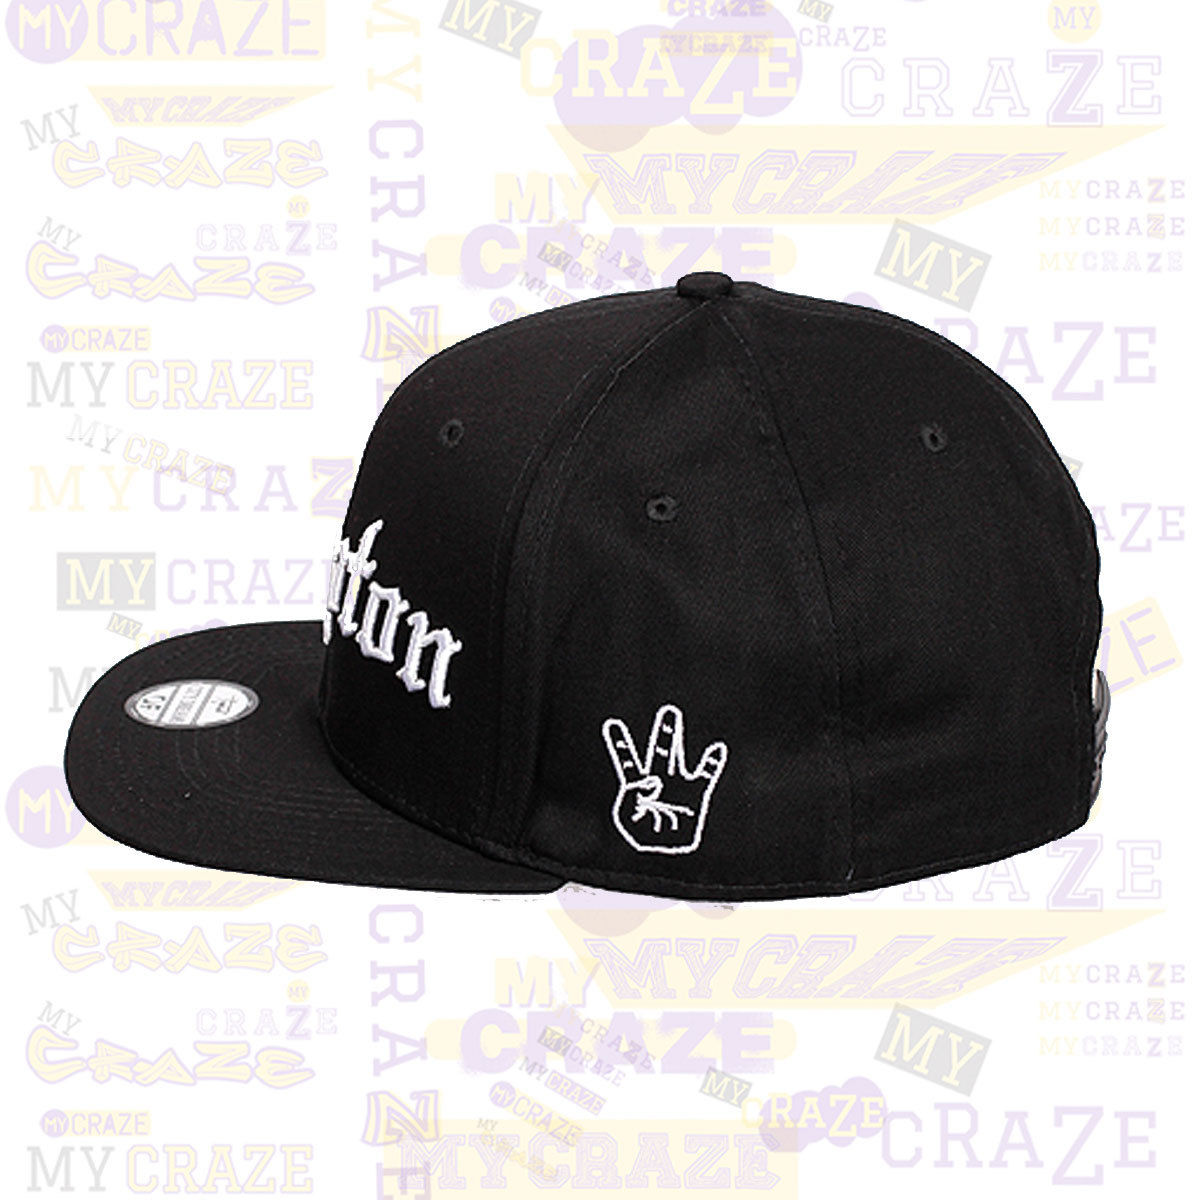 8546b31ef8cd35 usa compton california republic snapback 9fifty new era hat osfm f22e6  dc057; sale compton topcul west side hip hop black snapback cap 2d3c6 e23e2